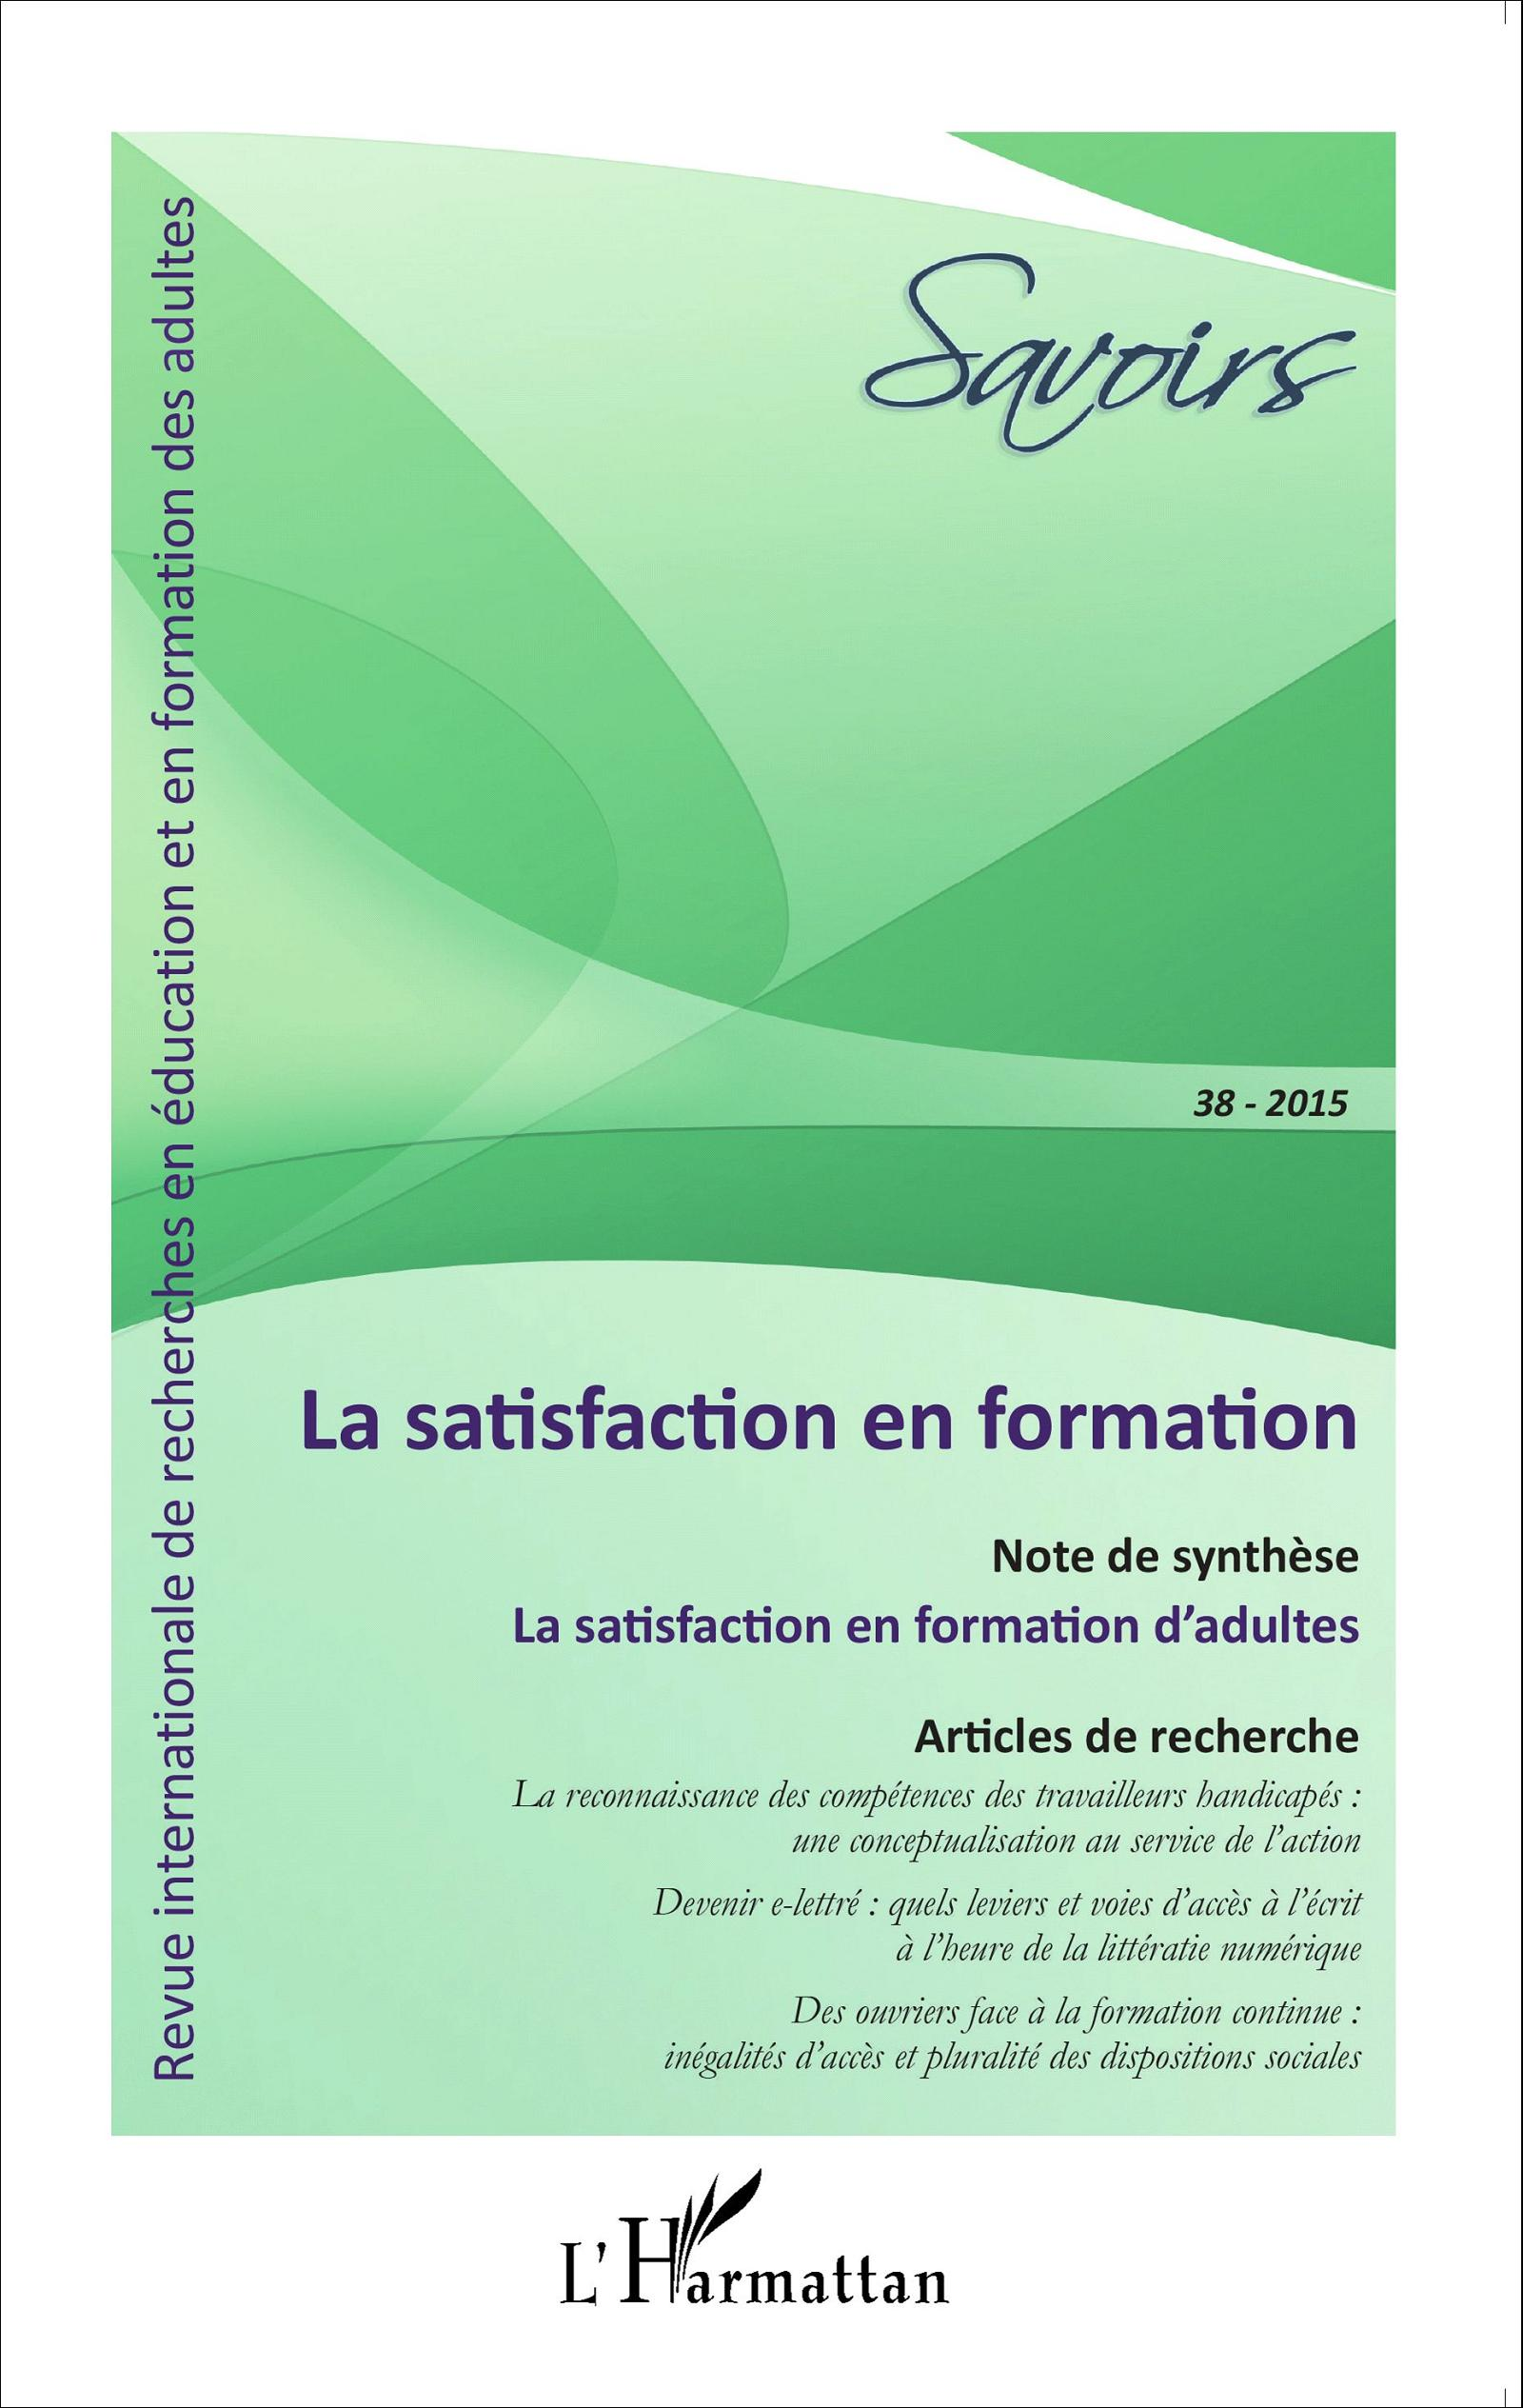 La satisfaction en formation